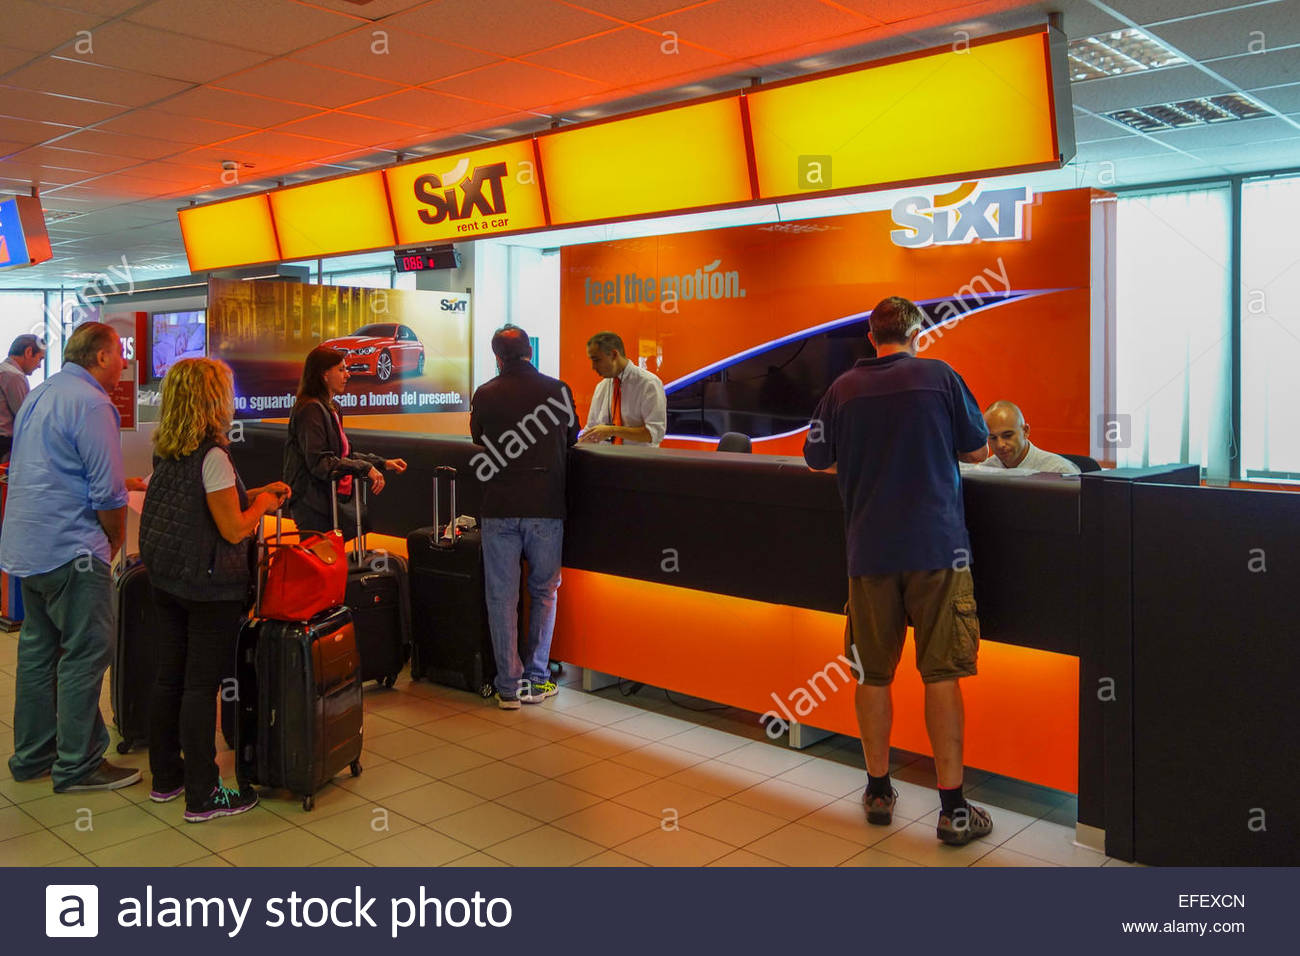 sixt car hire stockfotos sixt car hire bilder alamy